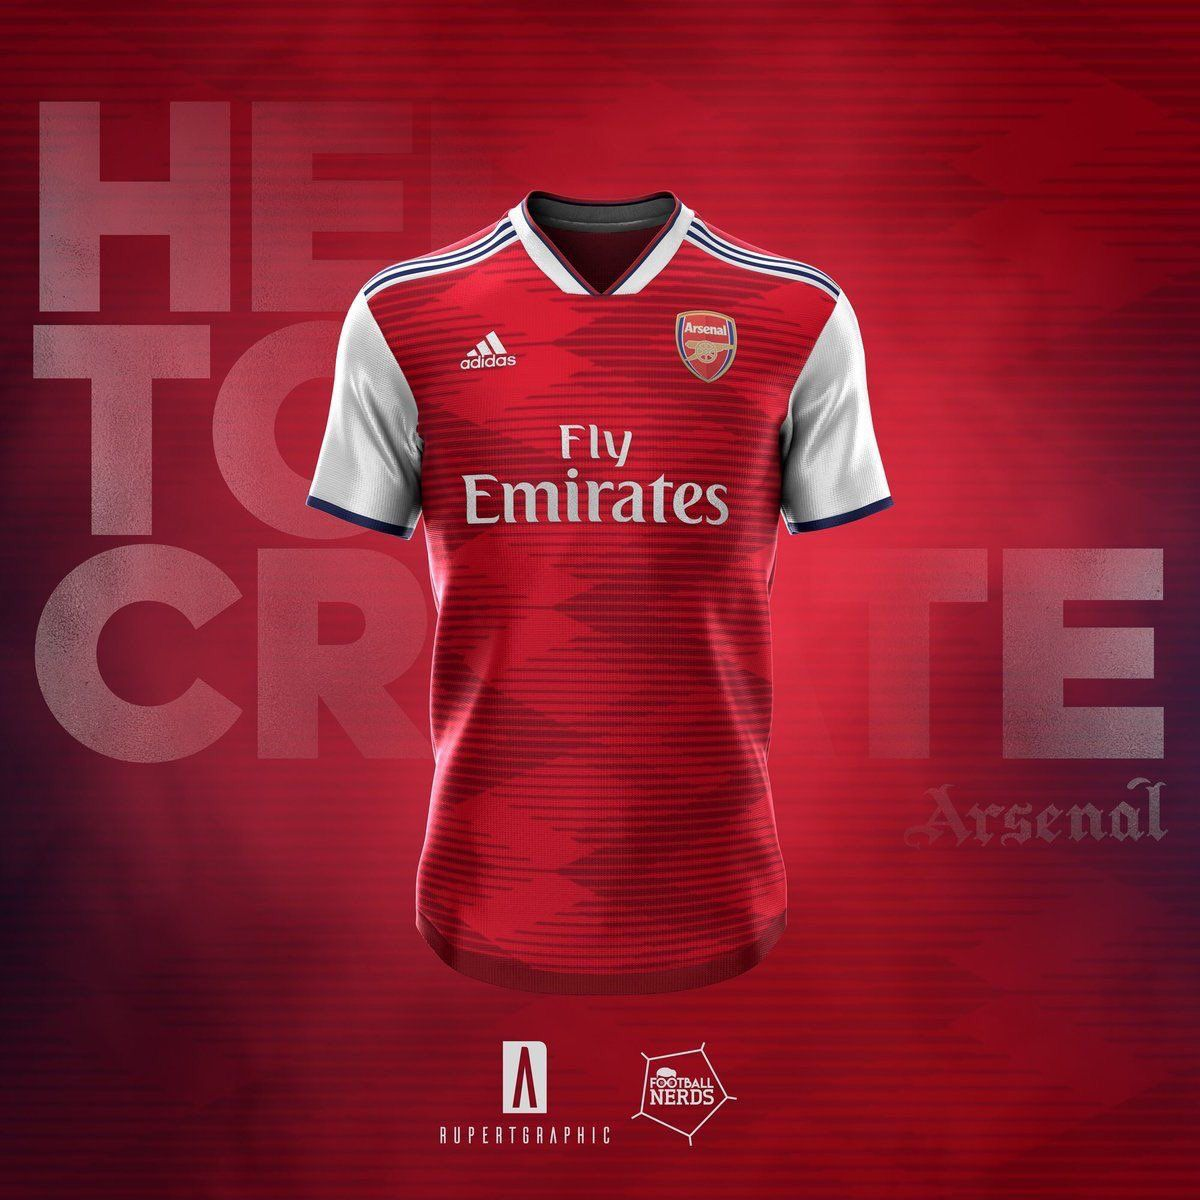 a44611abf05 Arsenal x Adidas | a | Football shirts, Soccer shirts, Soccer kits